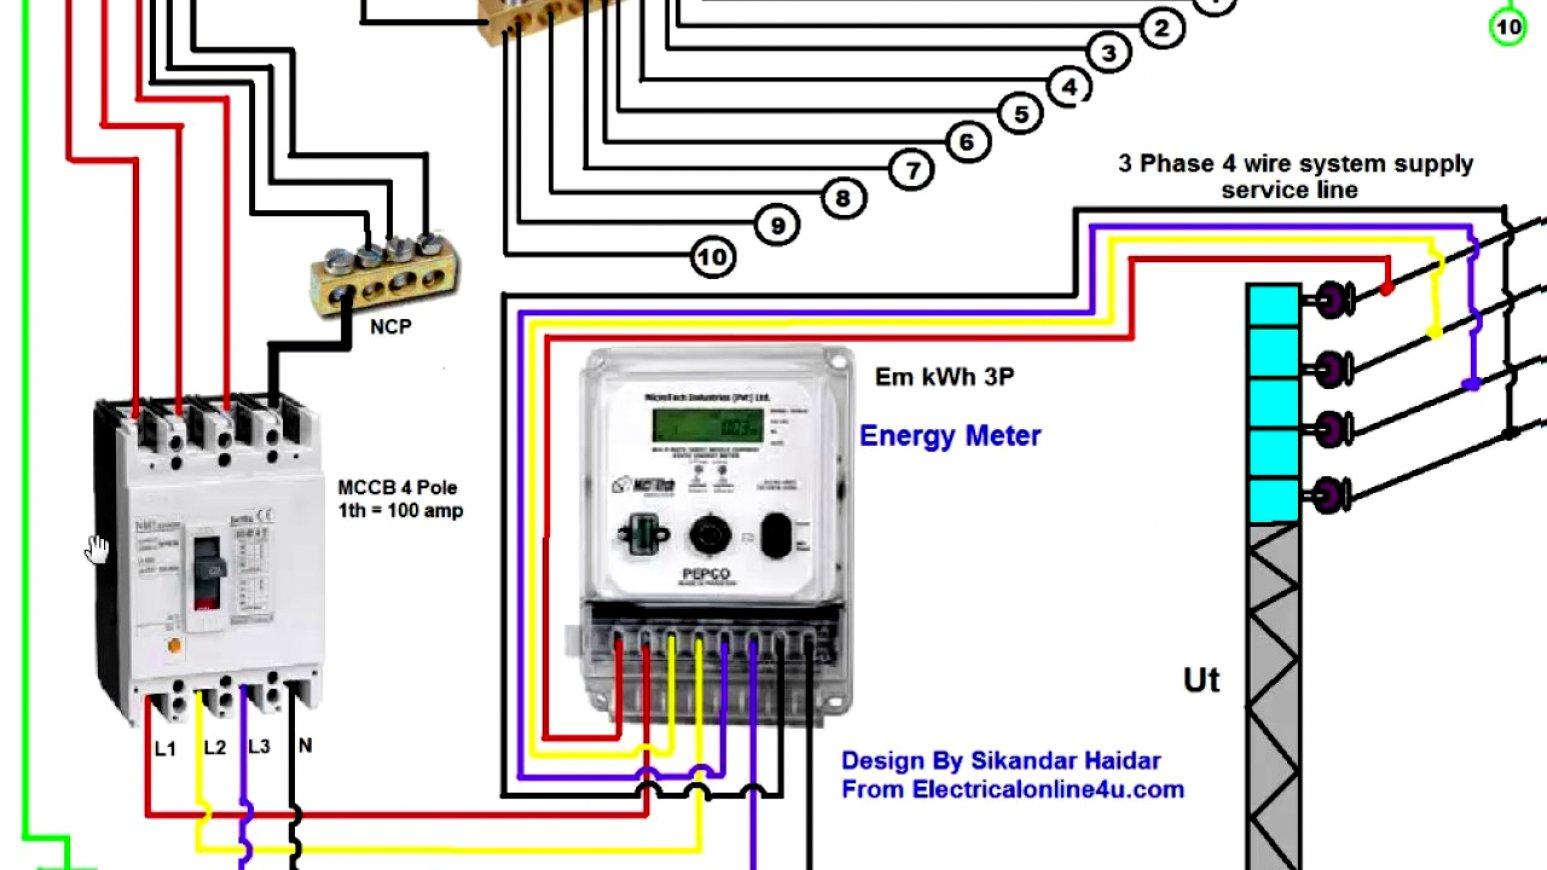 3 Phase 4 Wire Meter Diagram - Owner Manual & Wiring Diagram